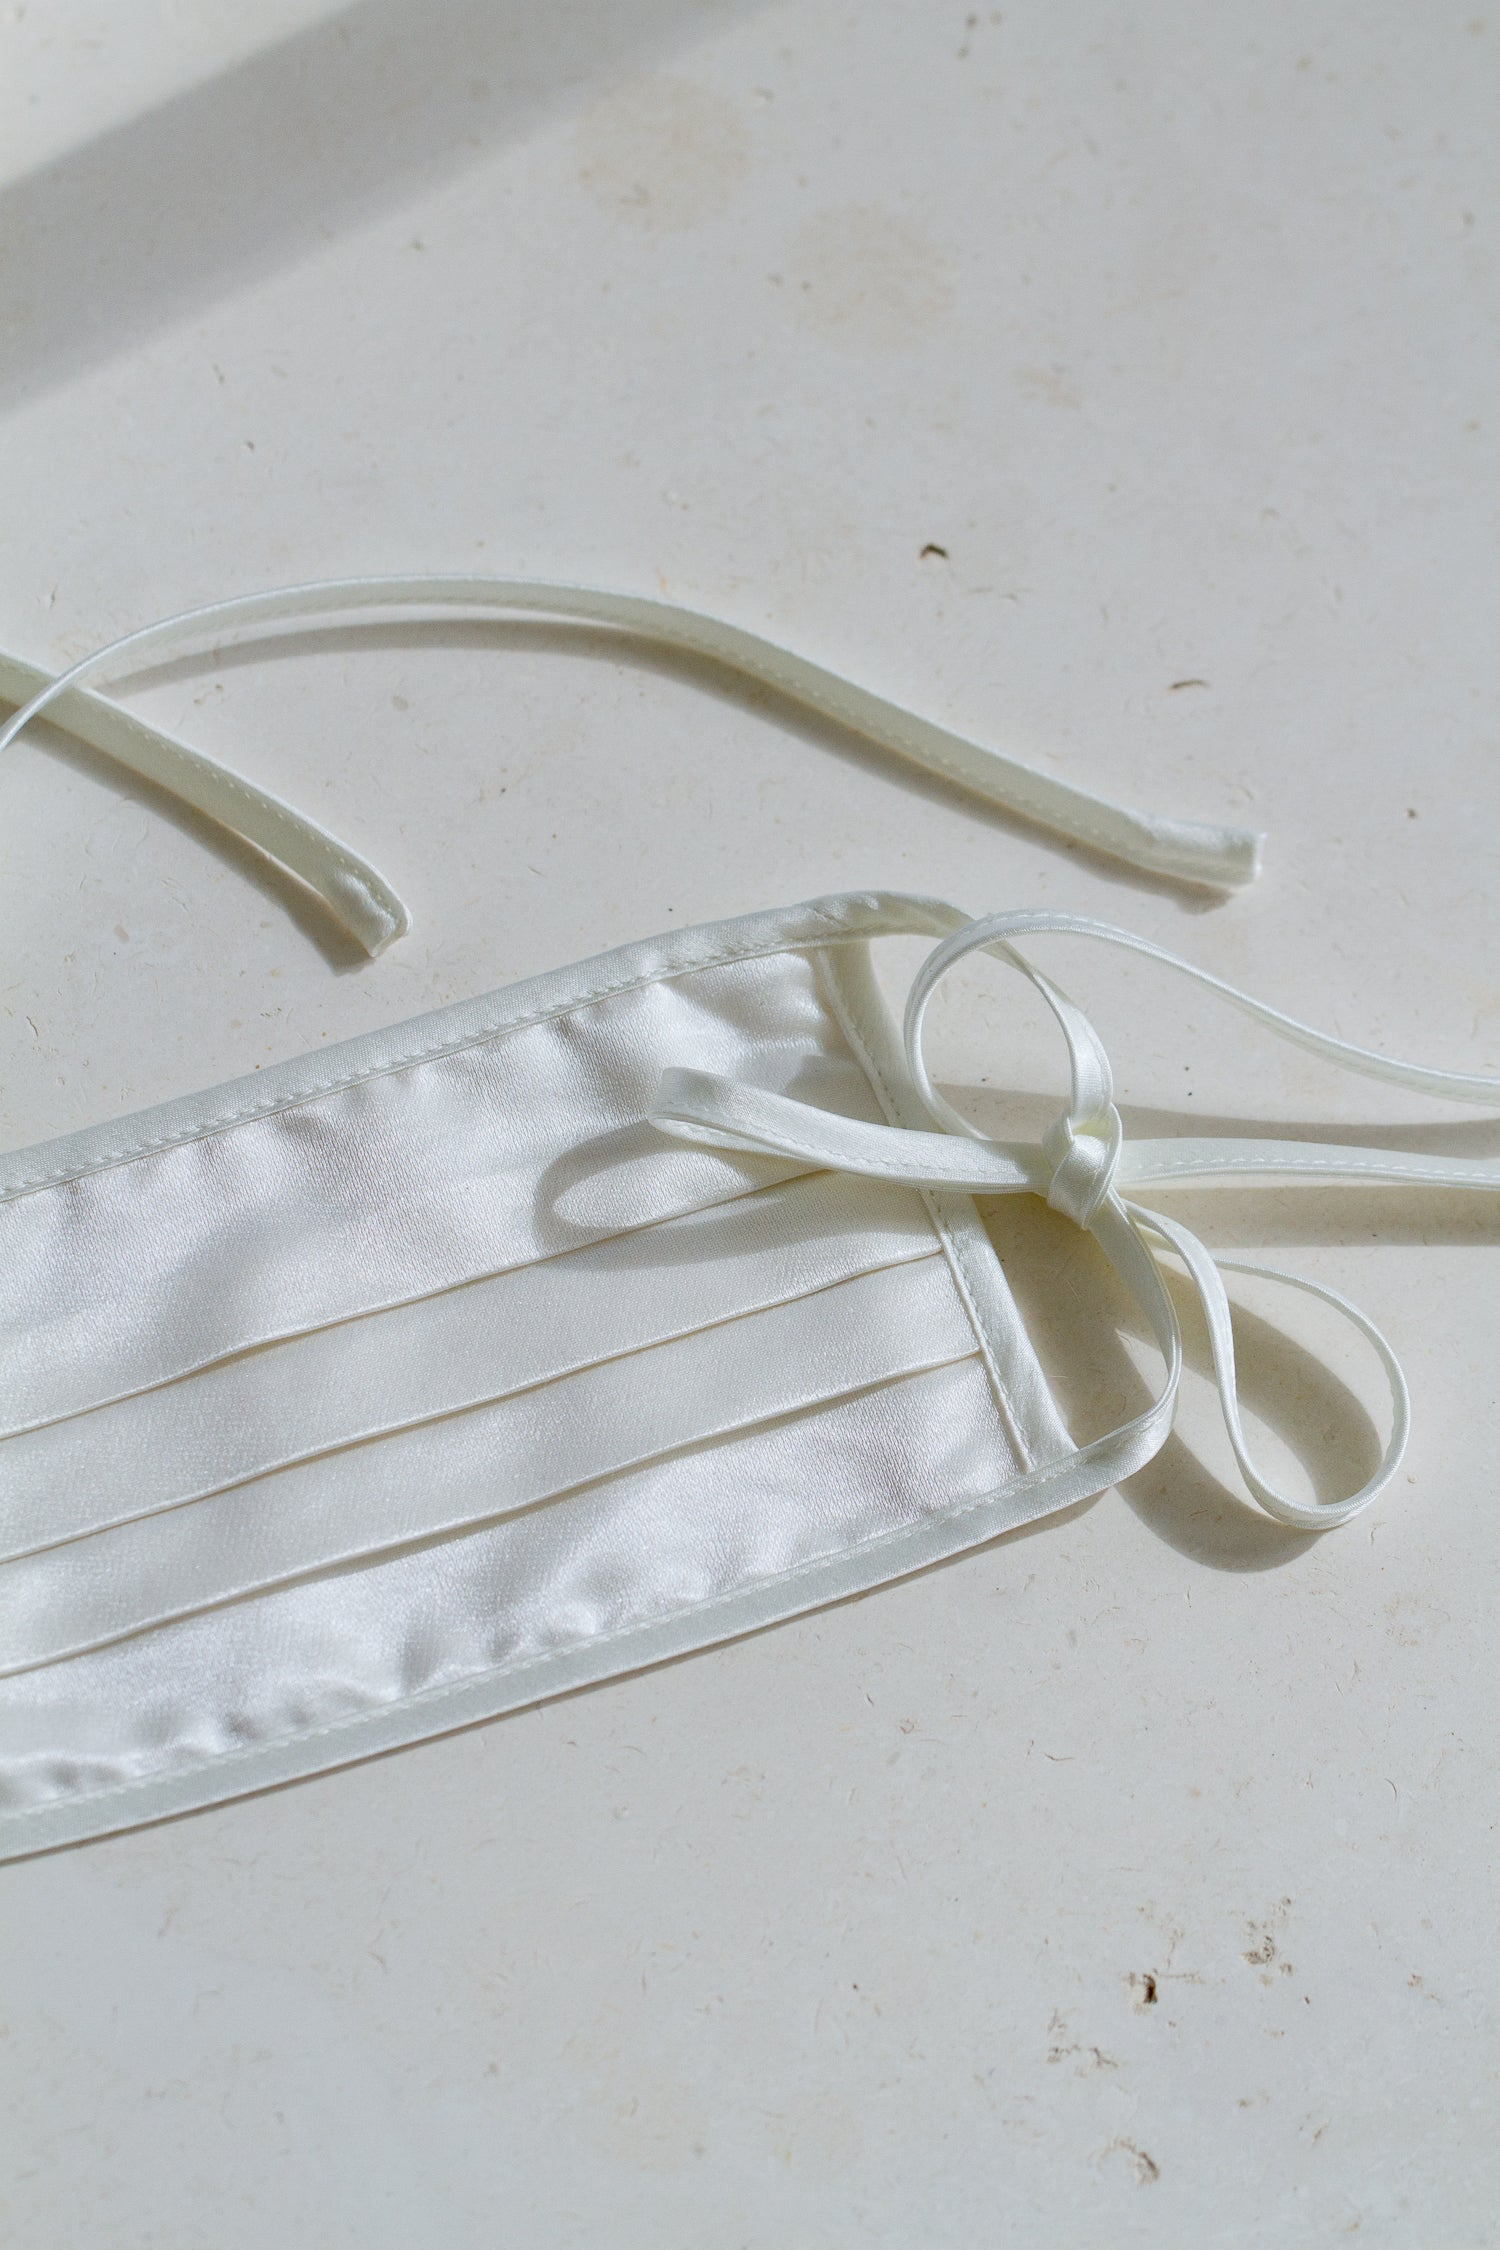 Face Mask with Ties - Off-White Satin